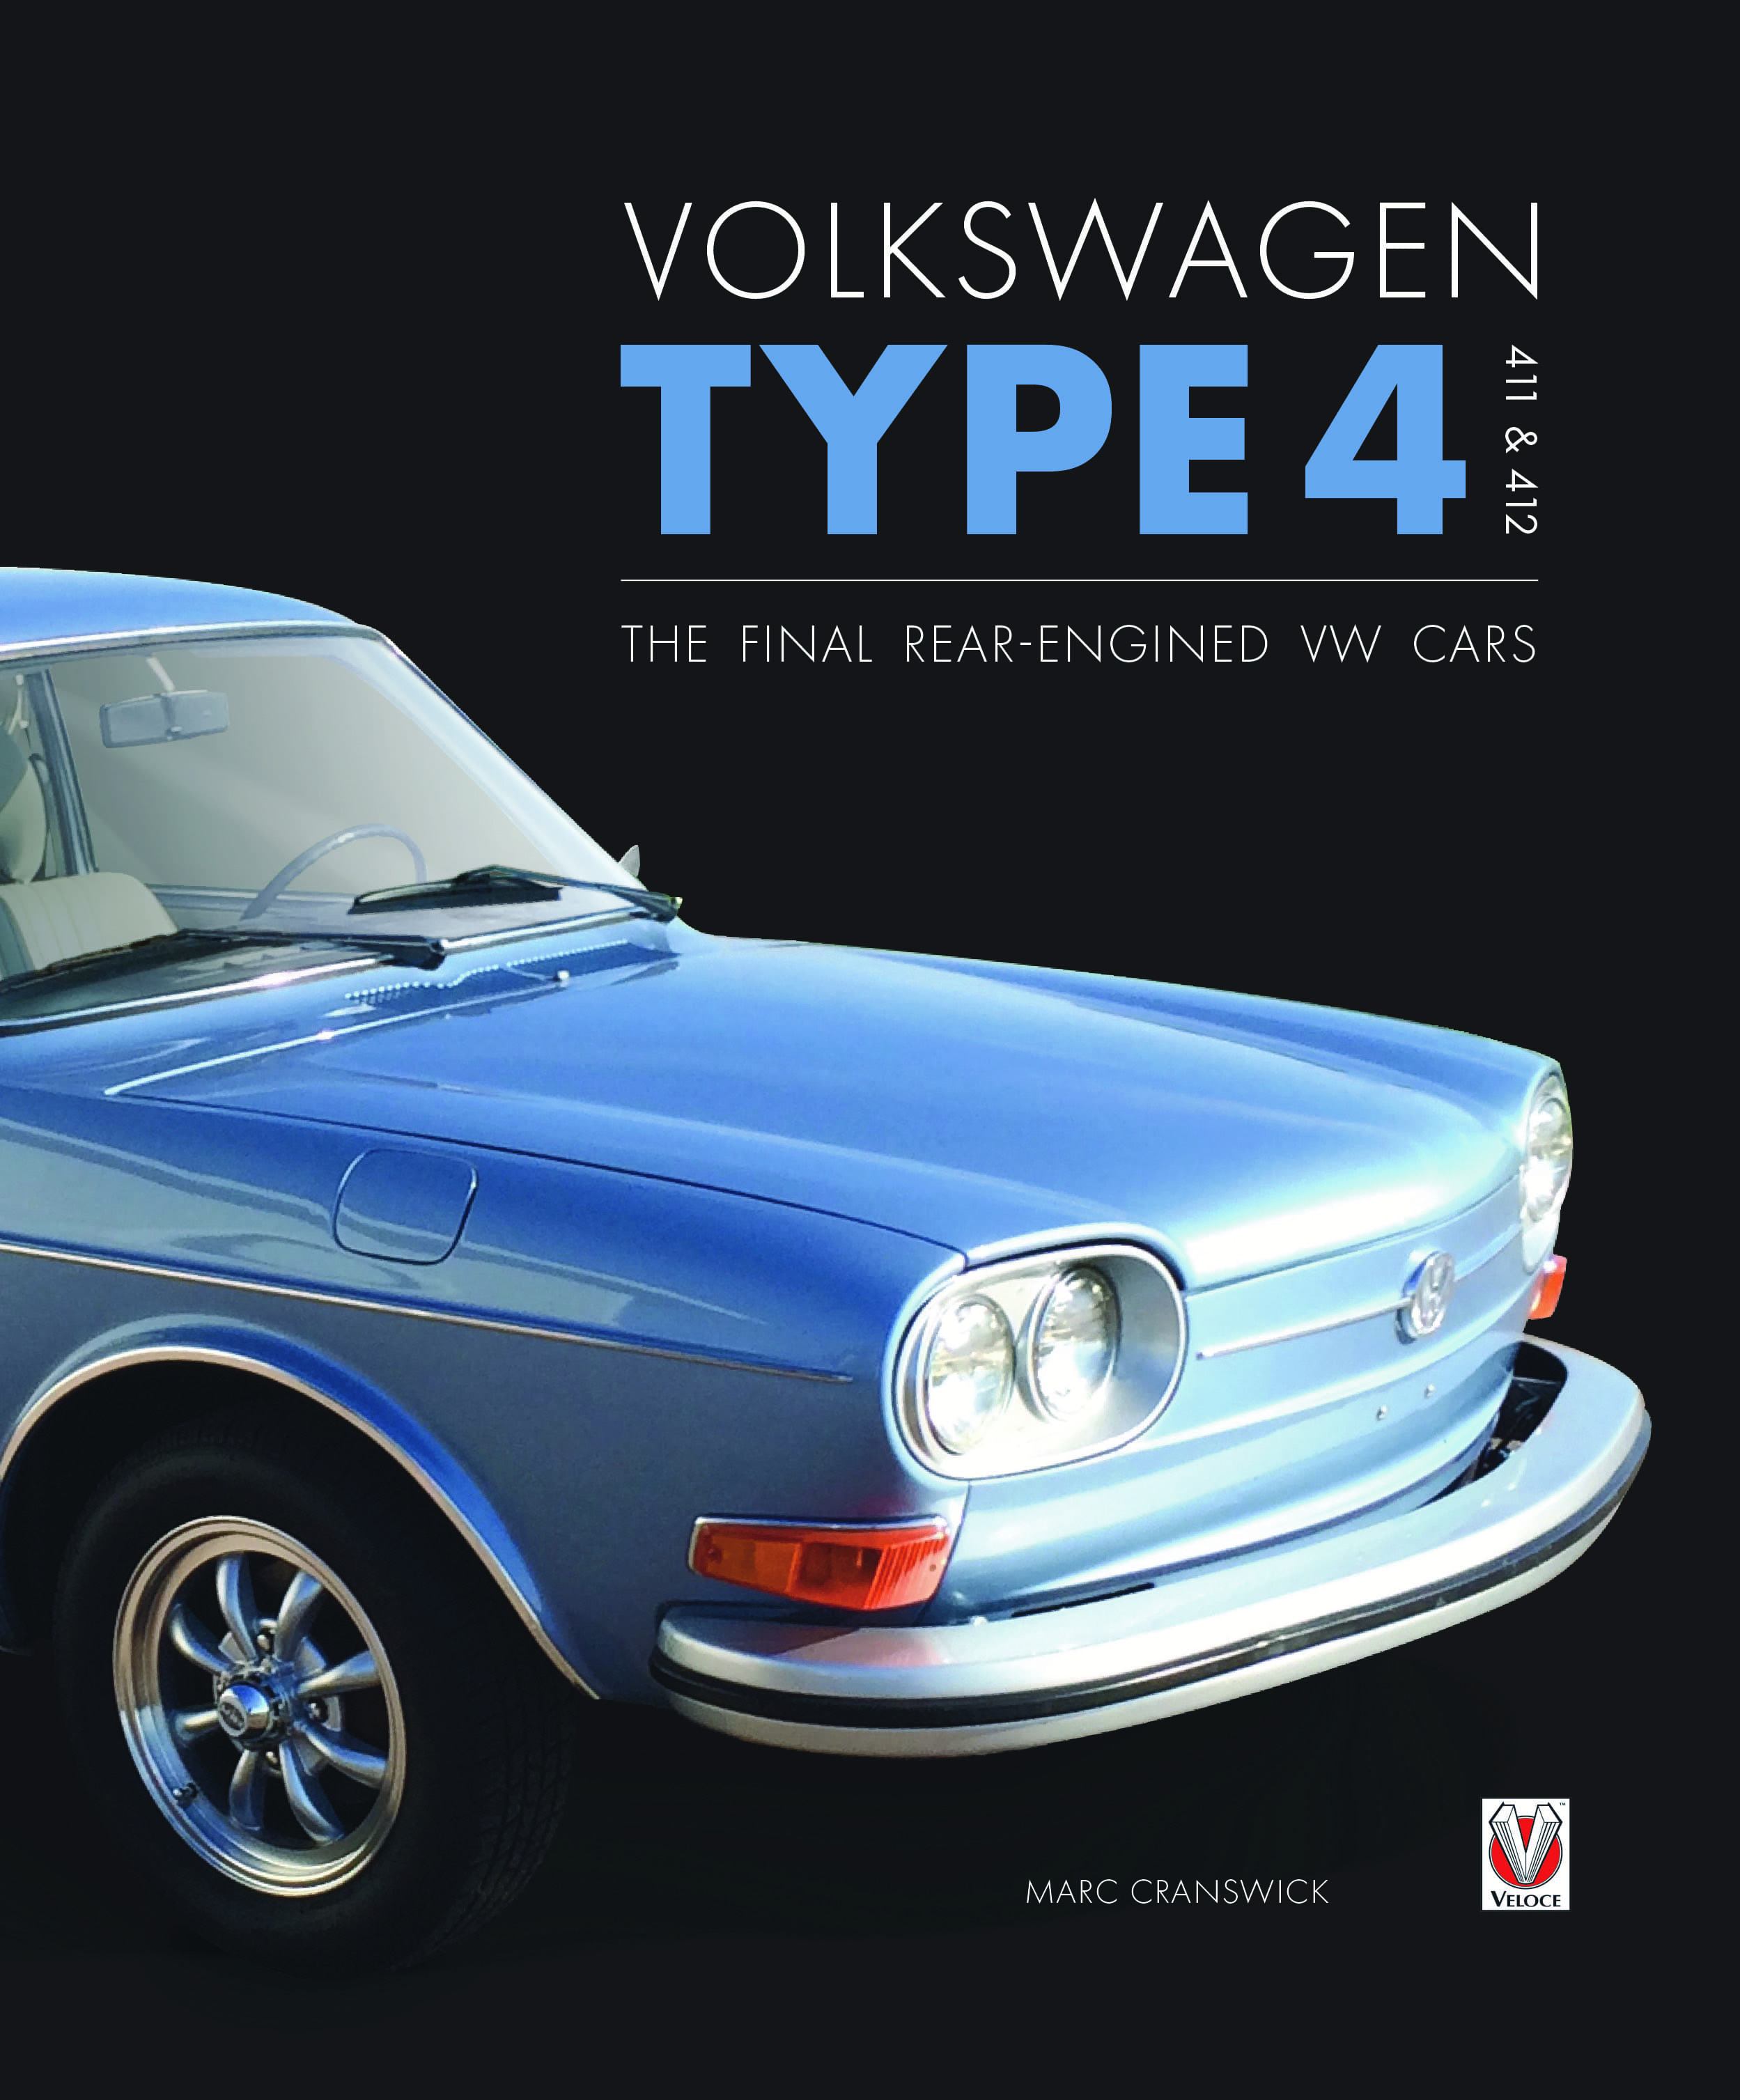 Volkswagen Type 4, 411 and 412 – The final rear-engined VW cars